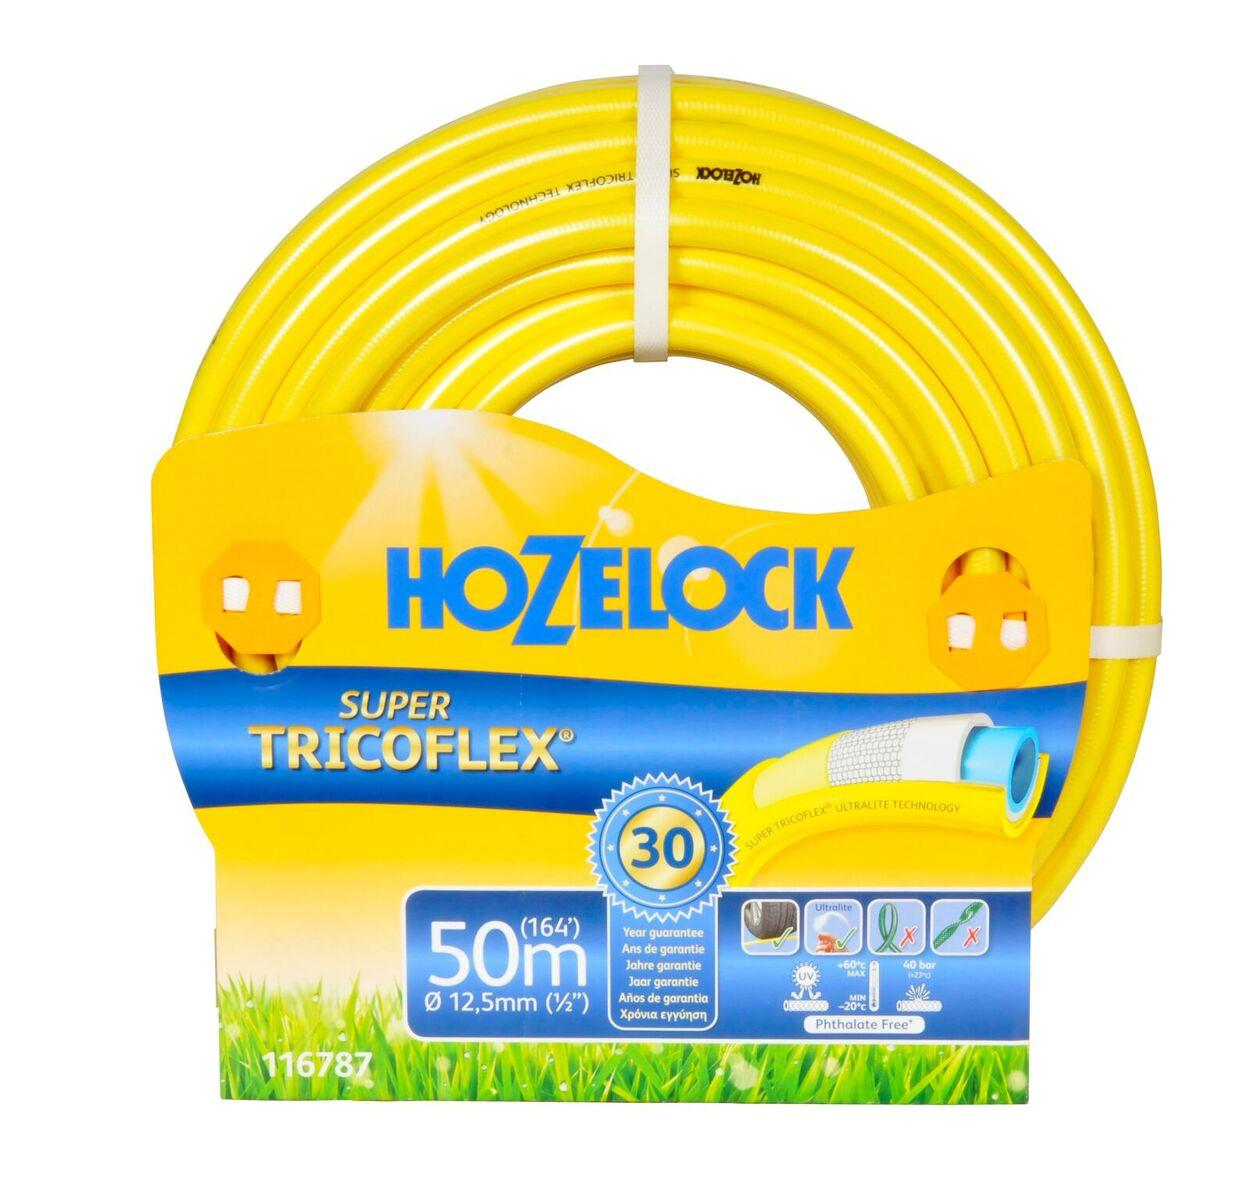 Шланг Hozelock 116787 super tricoflex ultimate шланг hozelock 116787 super tricoflex ultimate